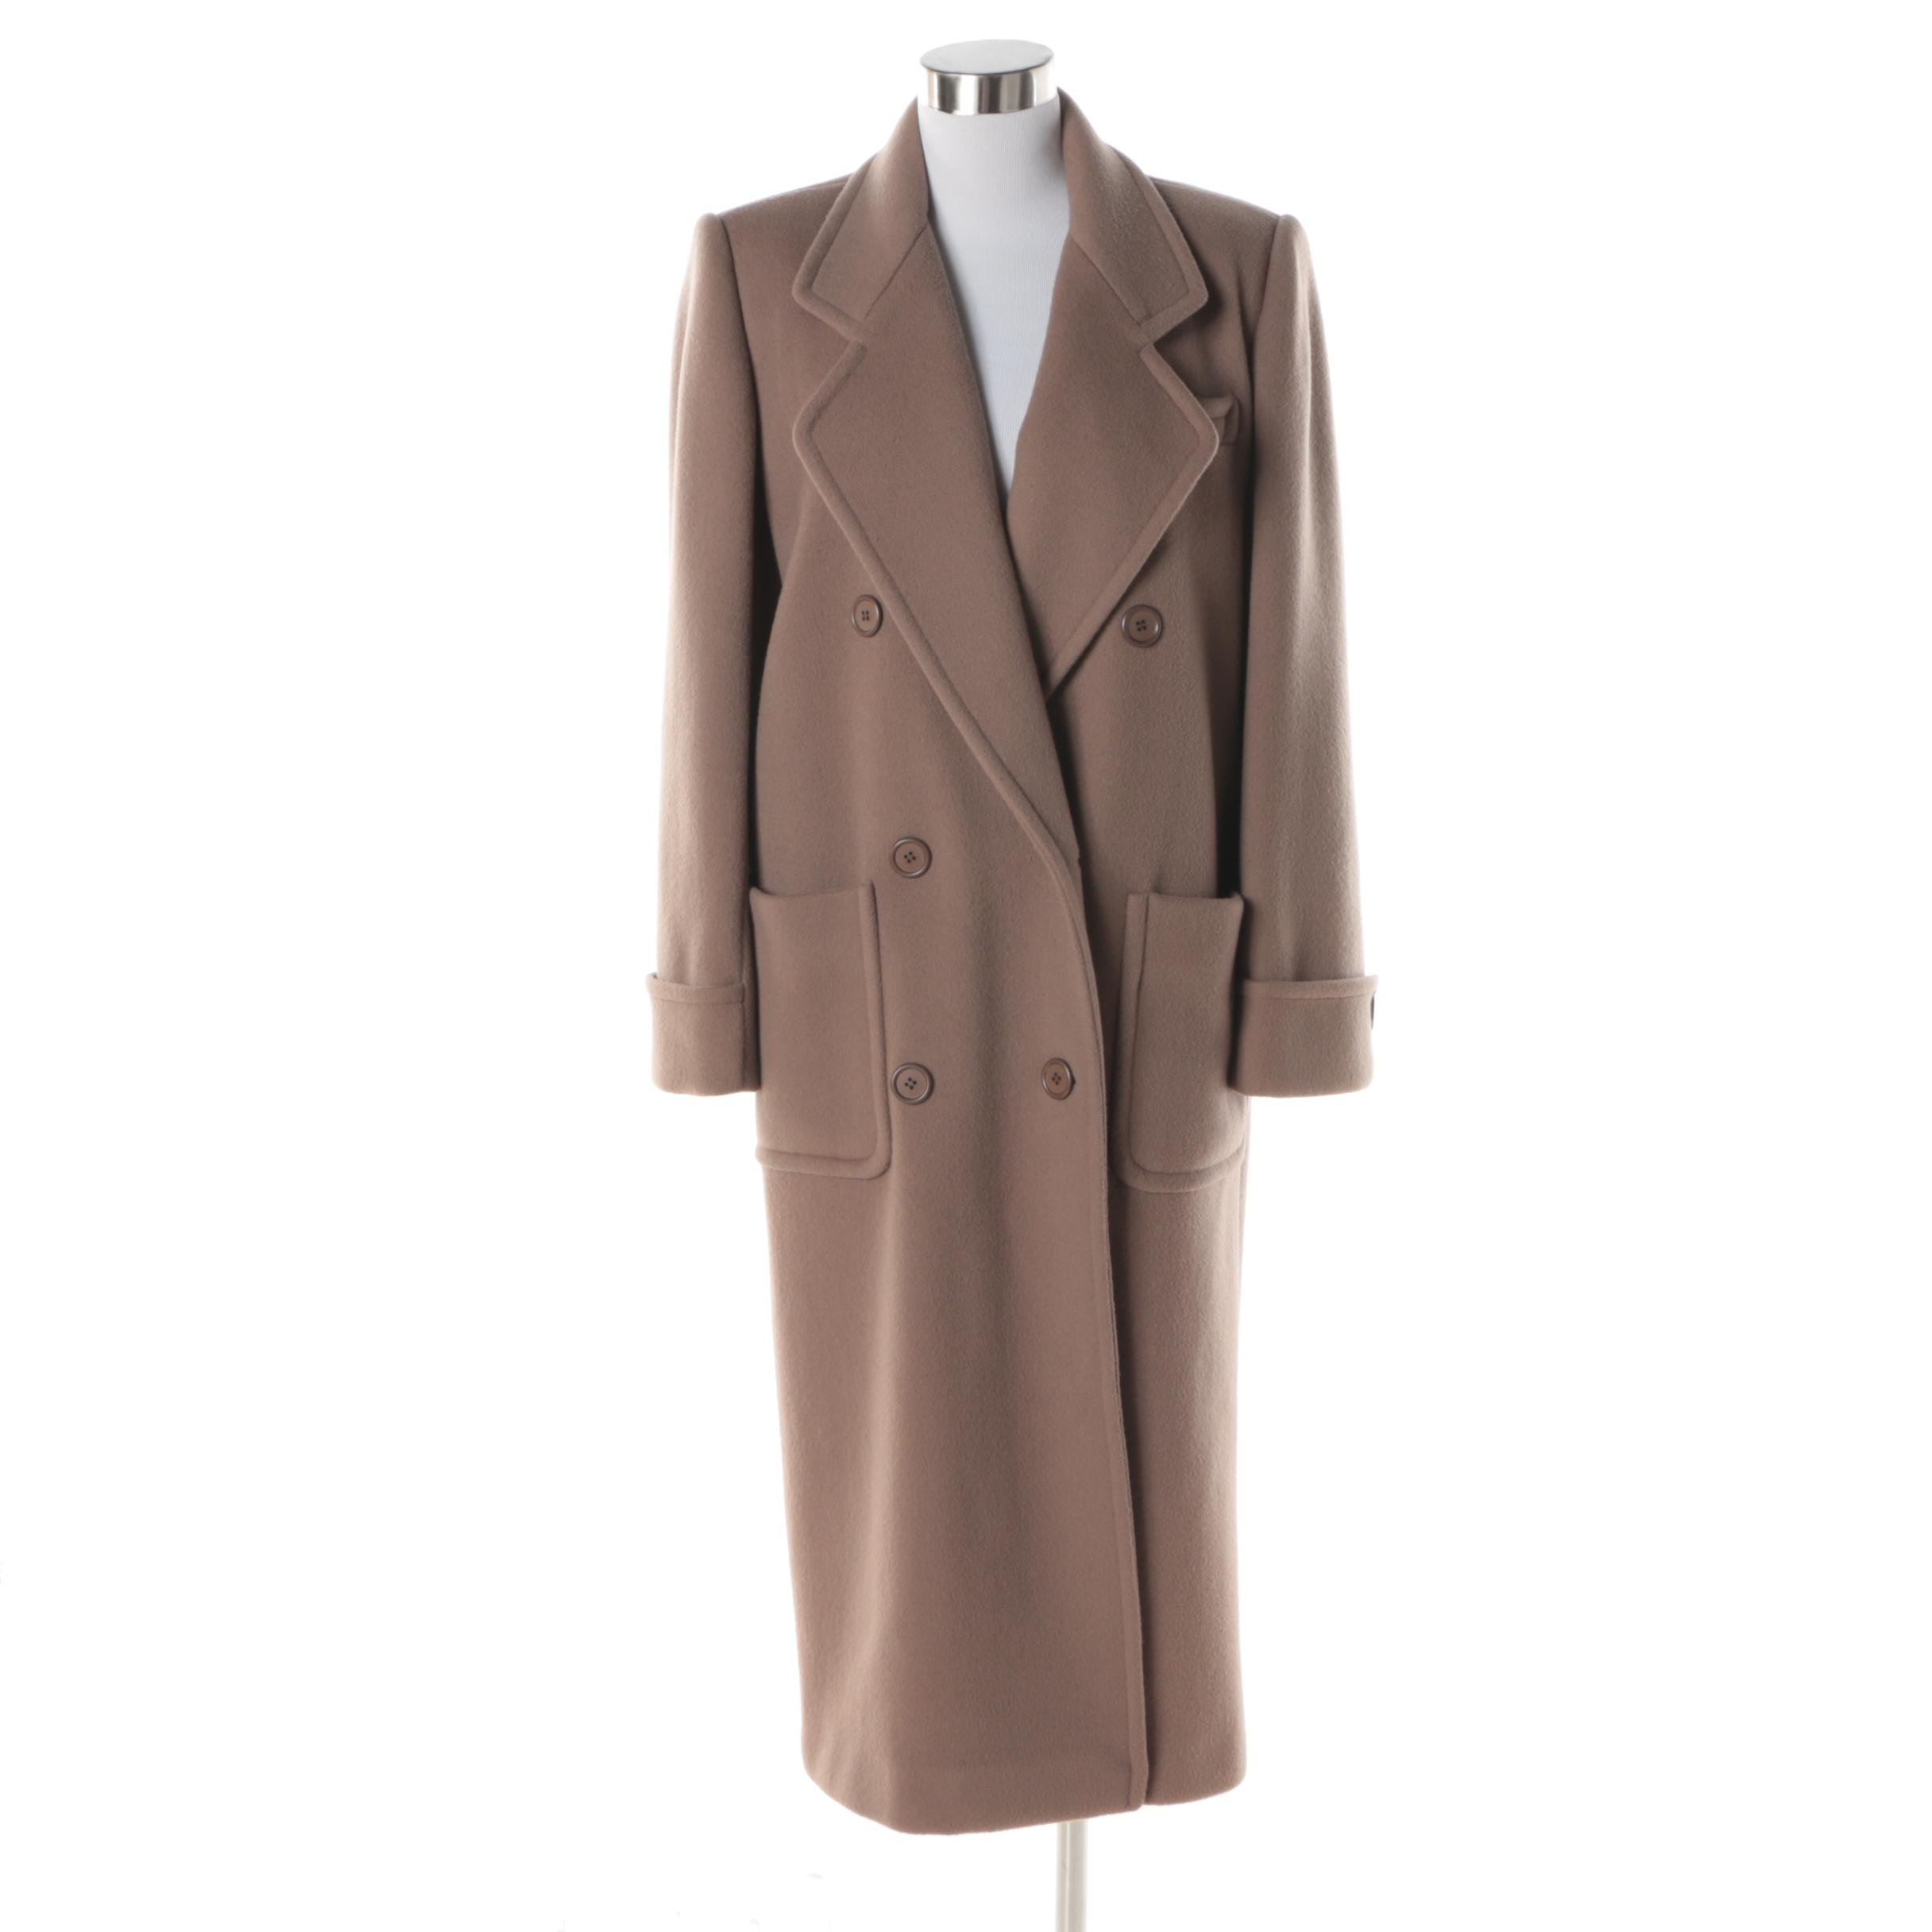 Women's Vintage Reflections Double-Breasted Taupe Wool Overcoat